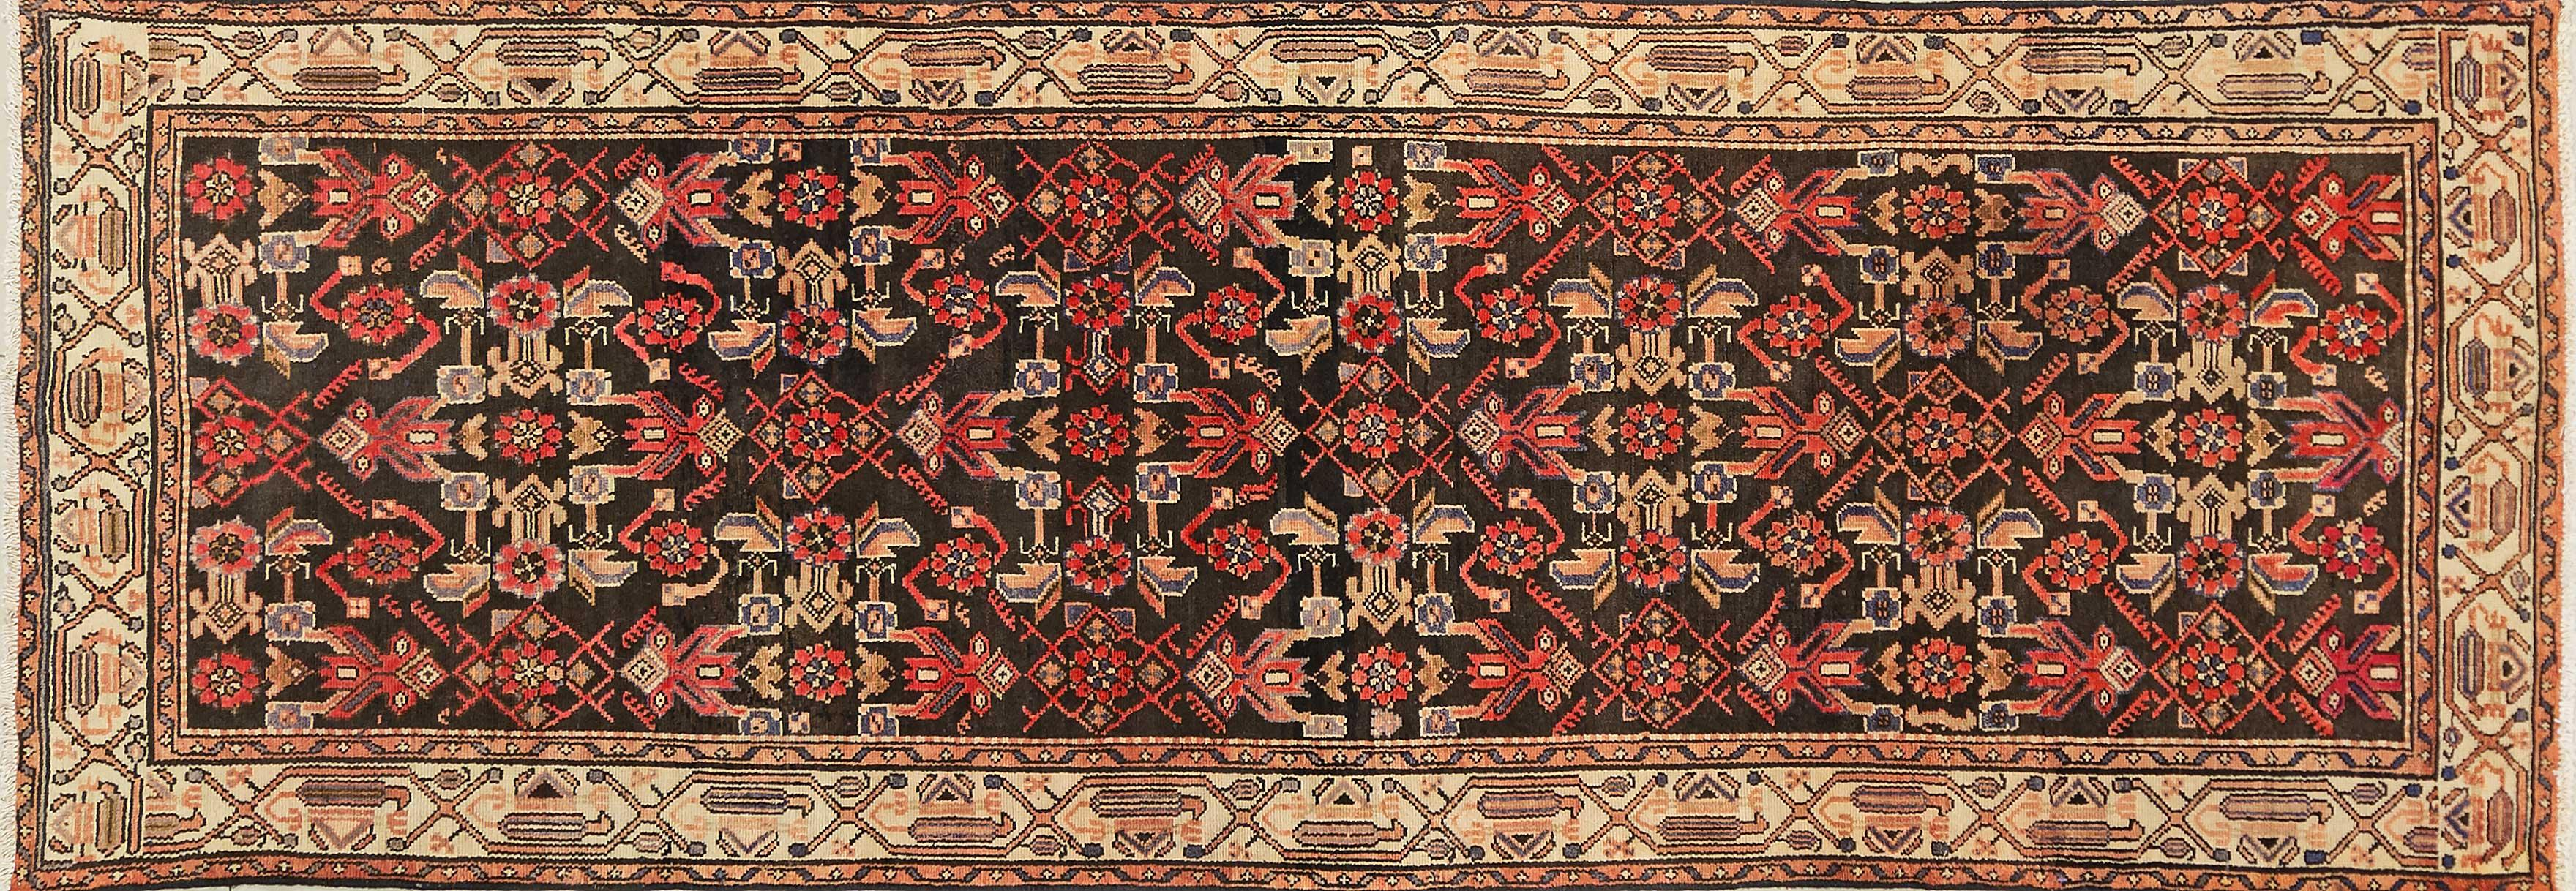 A Persian Hand Knotted Hamadan Runner, 310 x 105